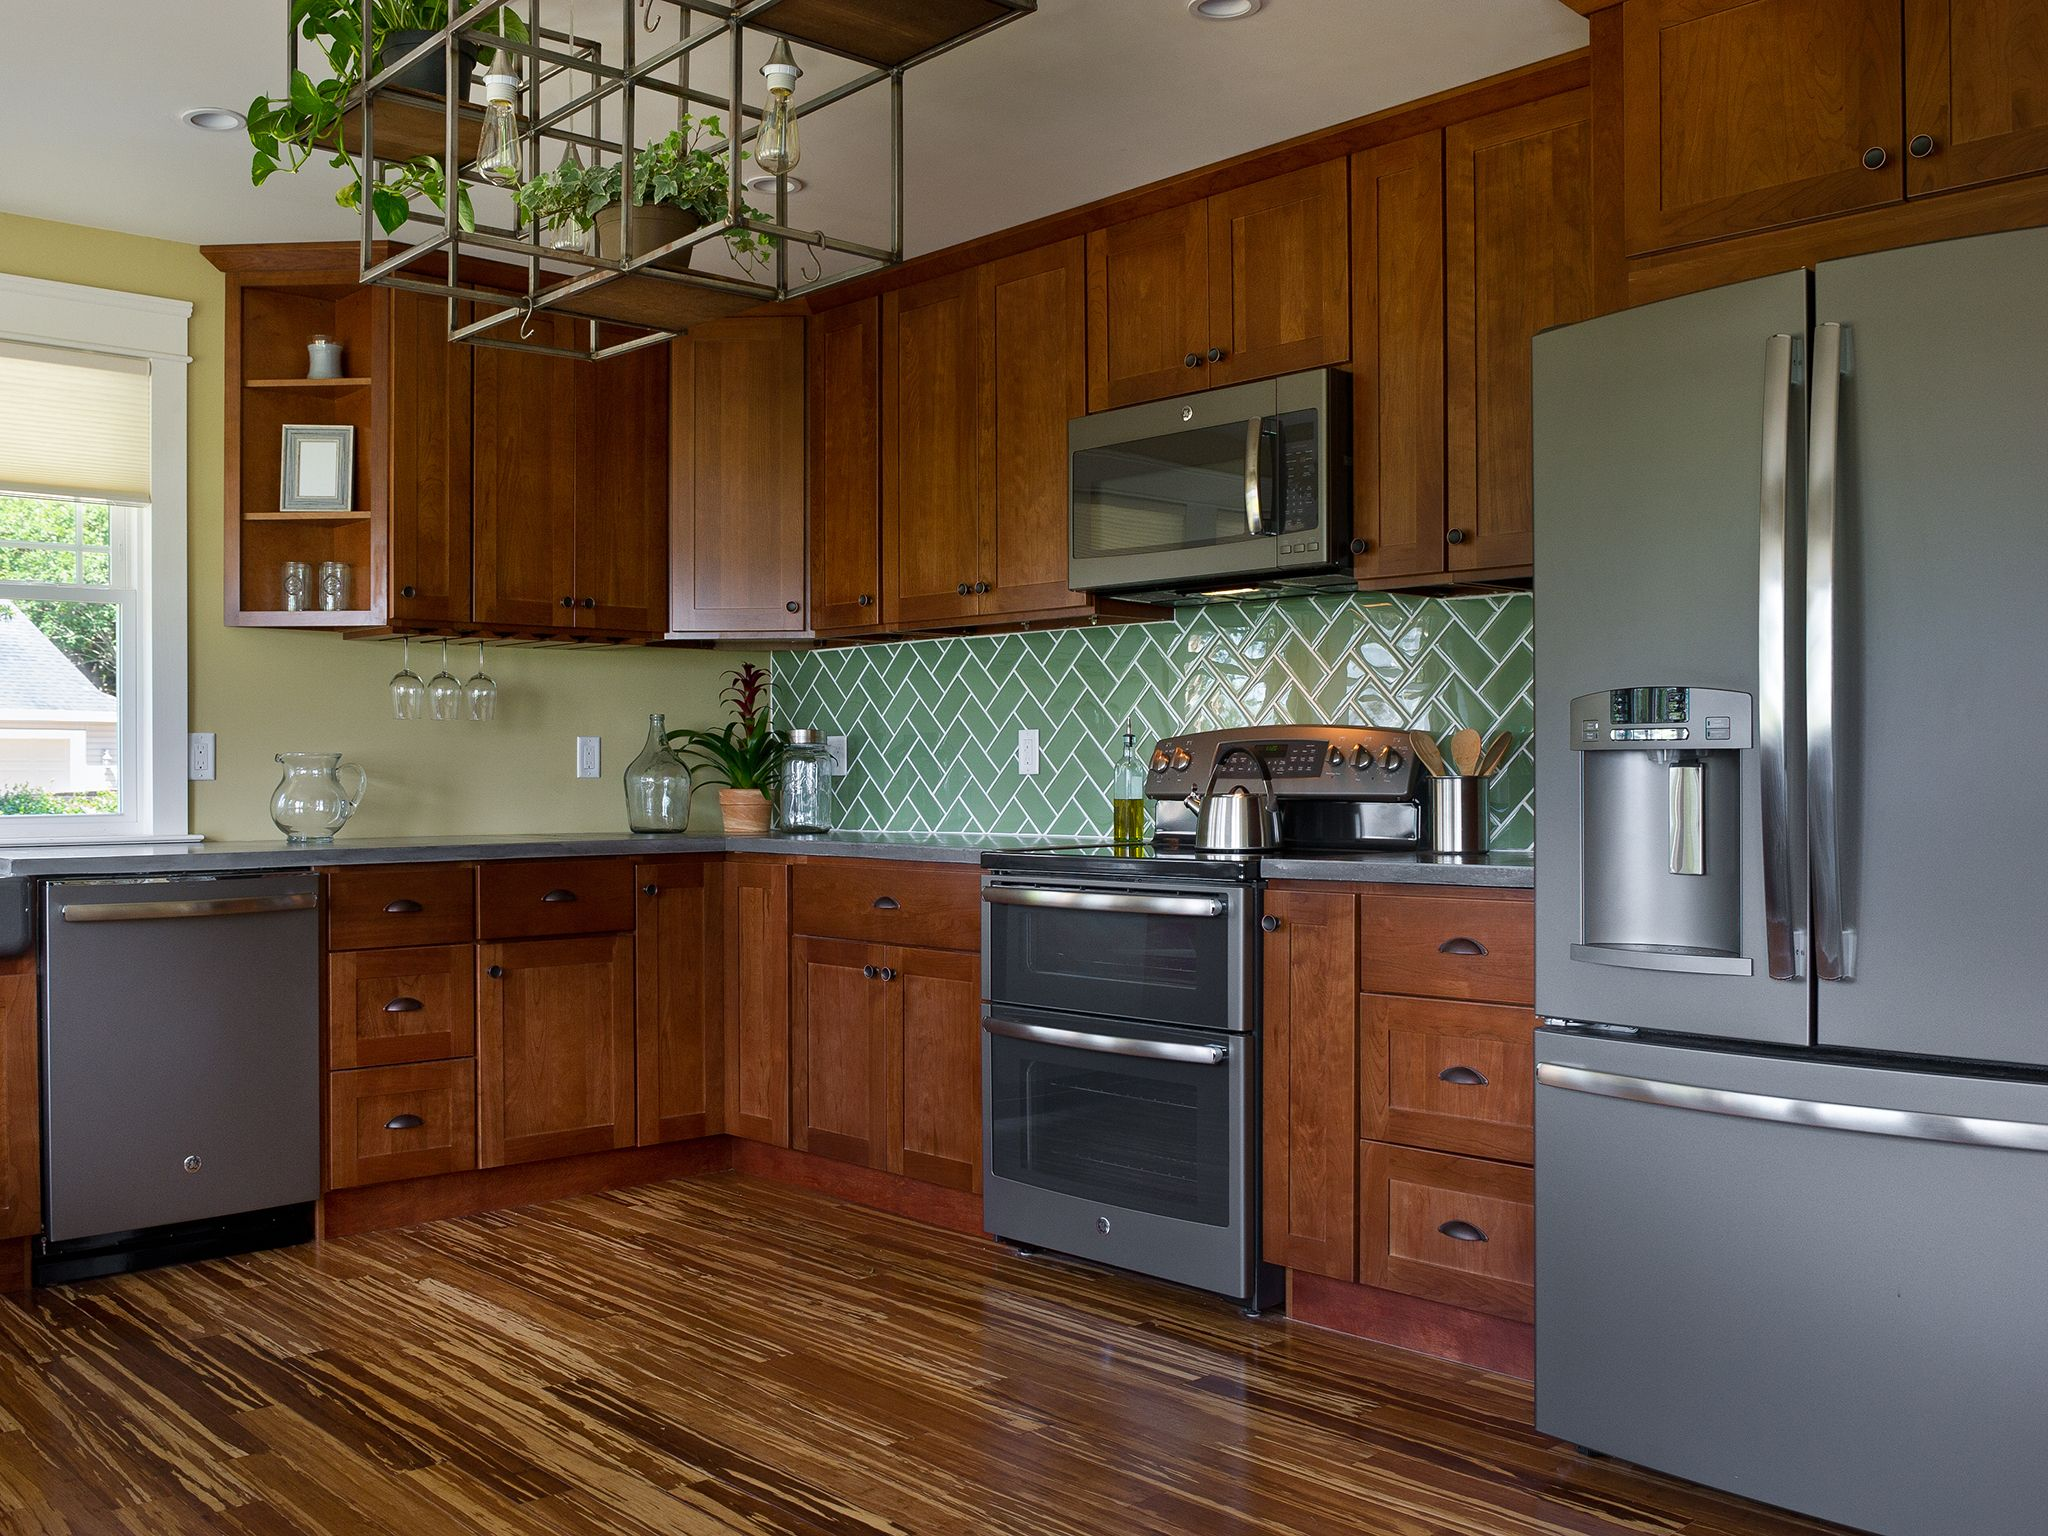 Kitchen Showcasing Findley Myers Montauk Cherry Cabinets In Diy